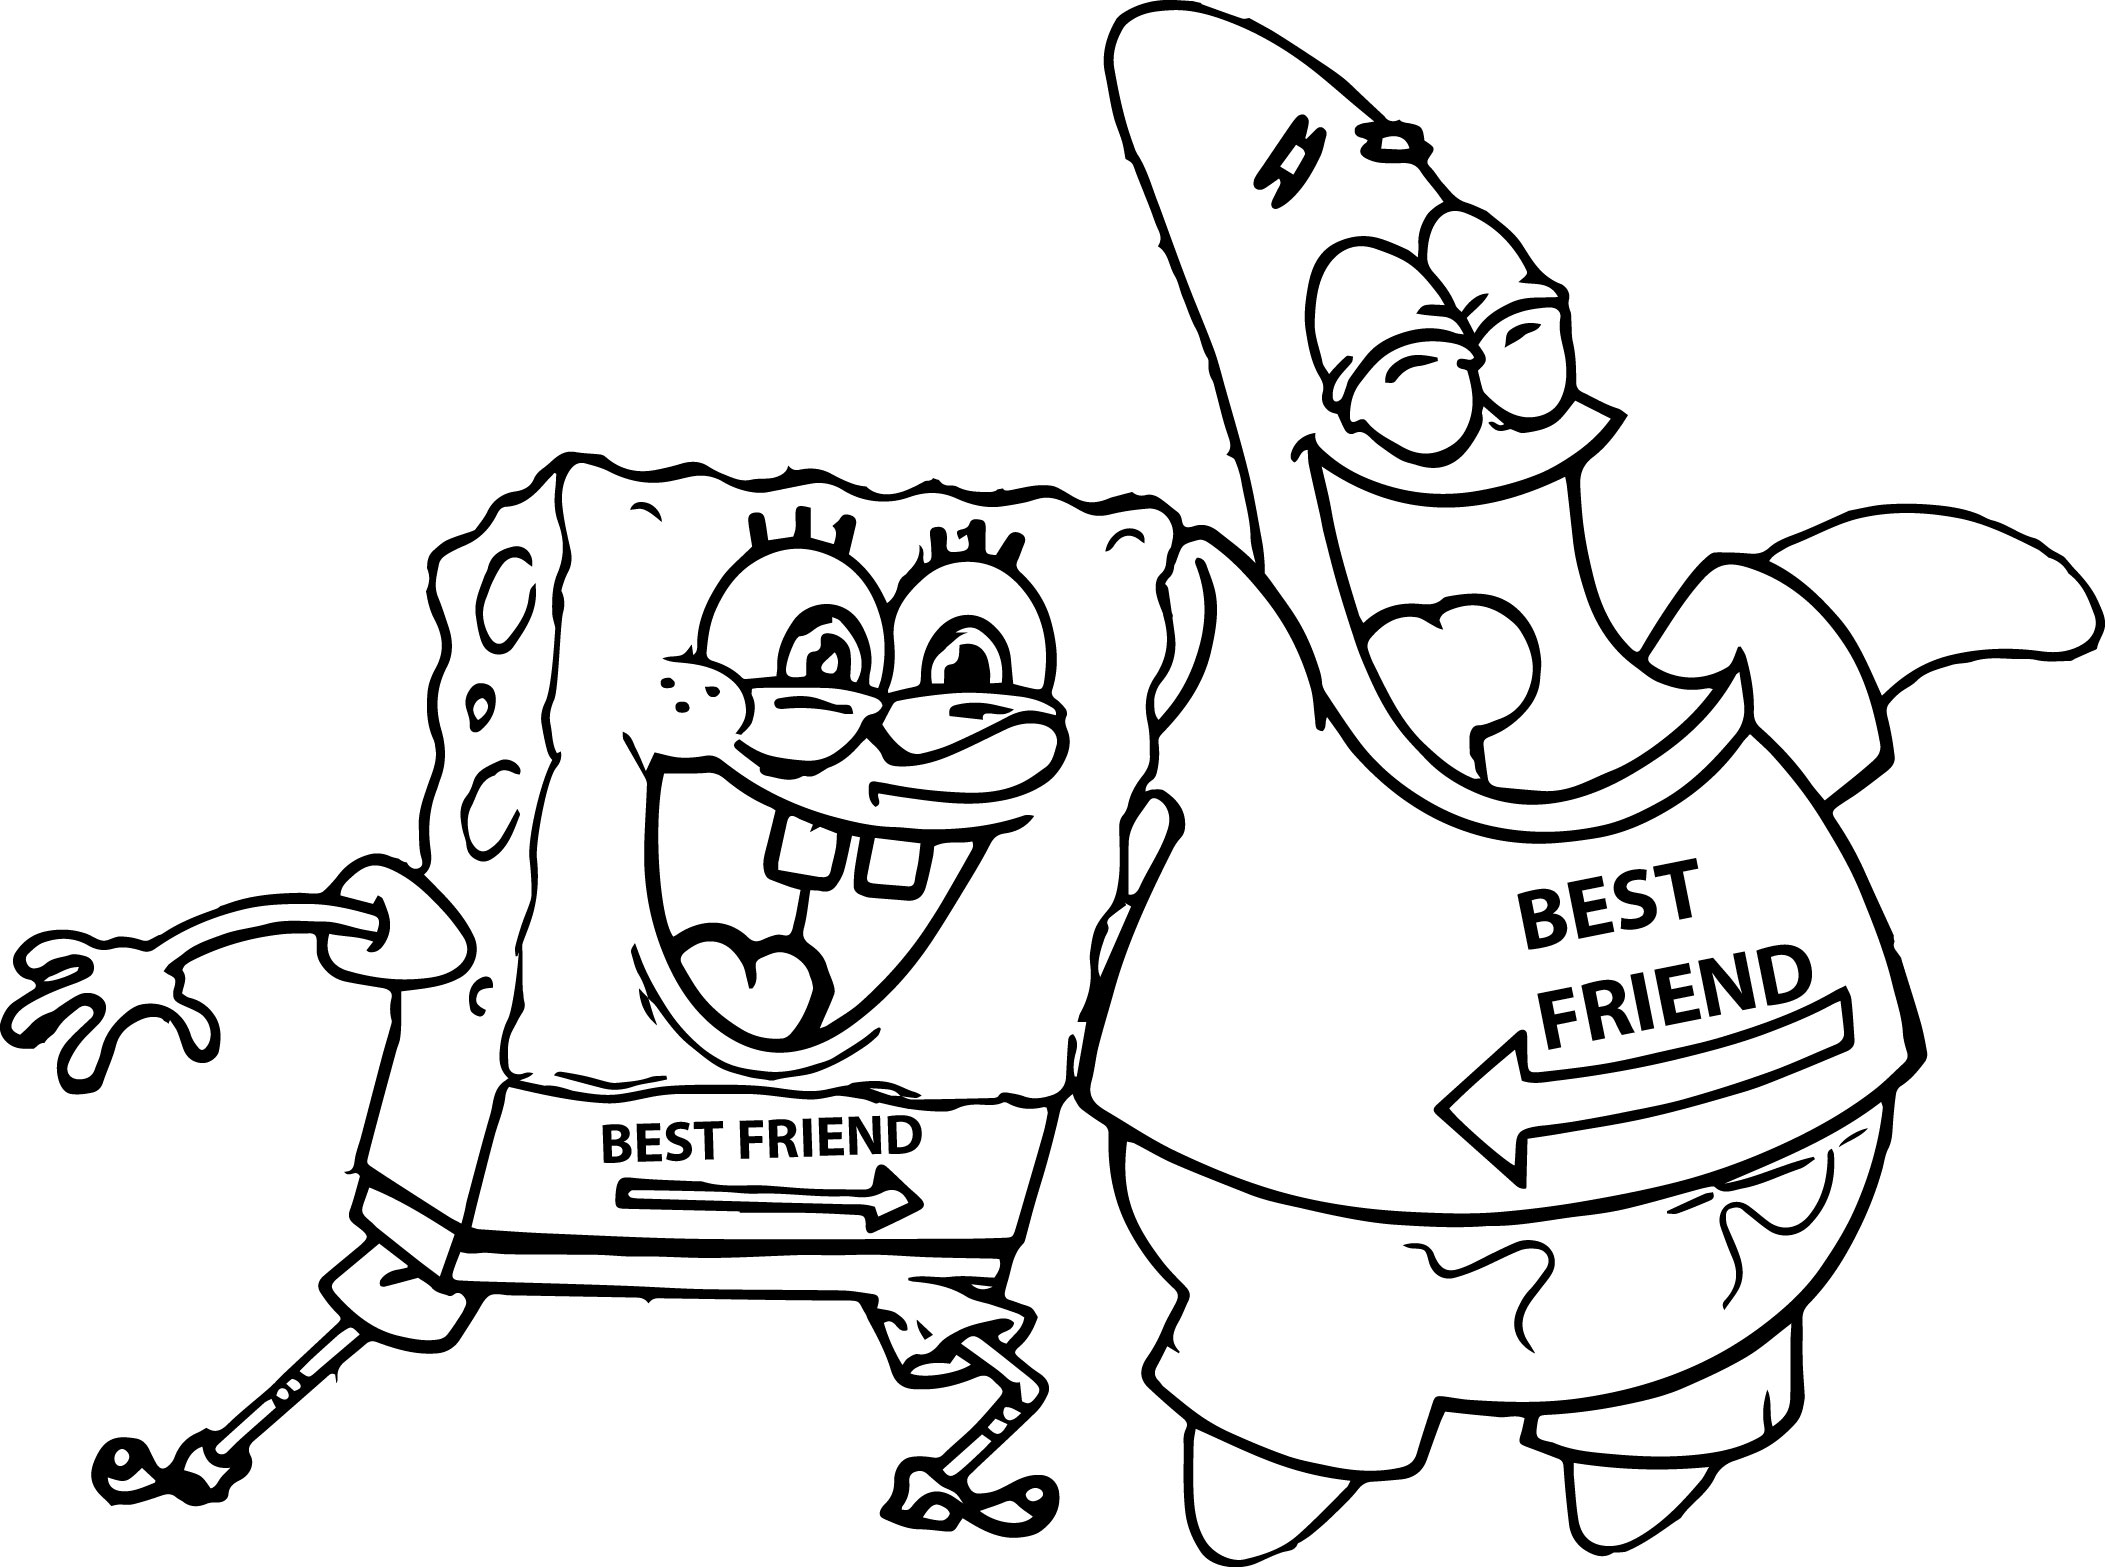 Best Friend Coloring Pages To Download And Print For Free And Friends Coloring Pages